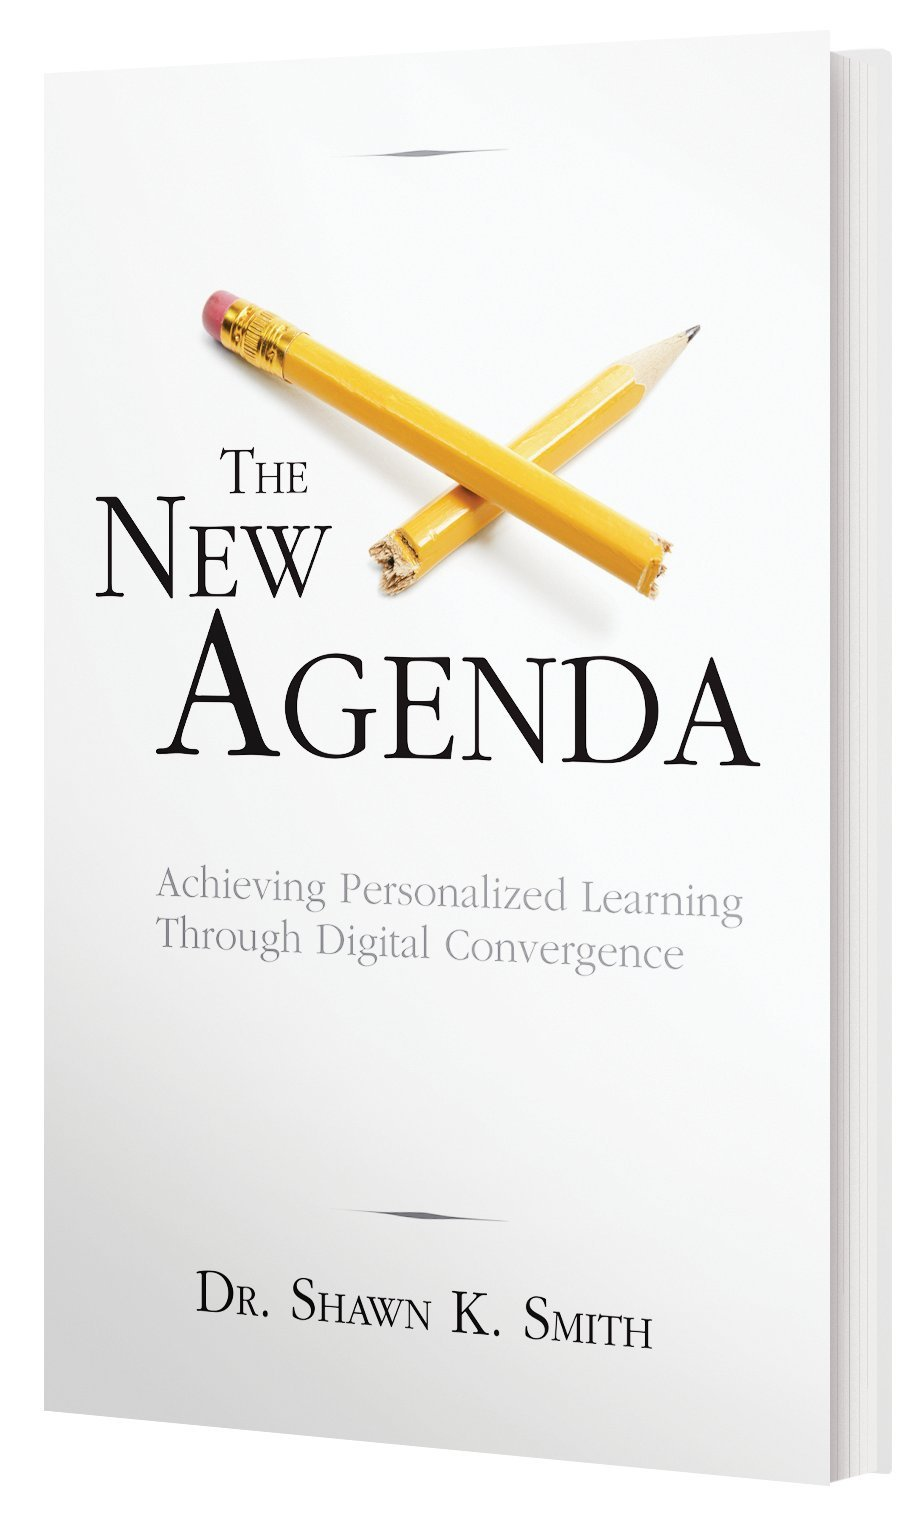 Amazon.com: The New Agenda: Achieving Personalized Learning ...